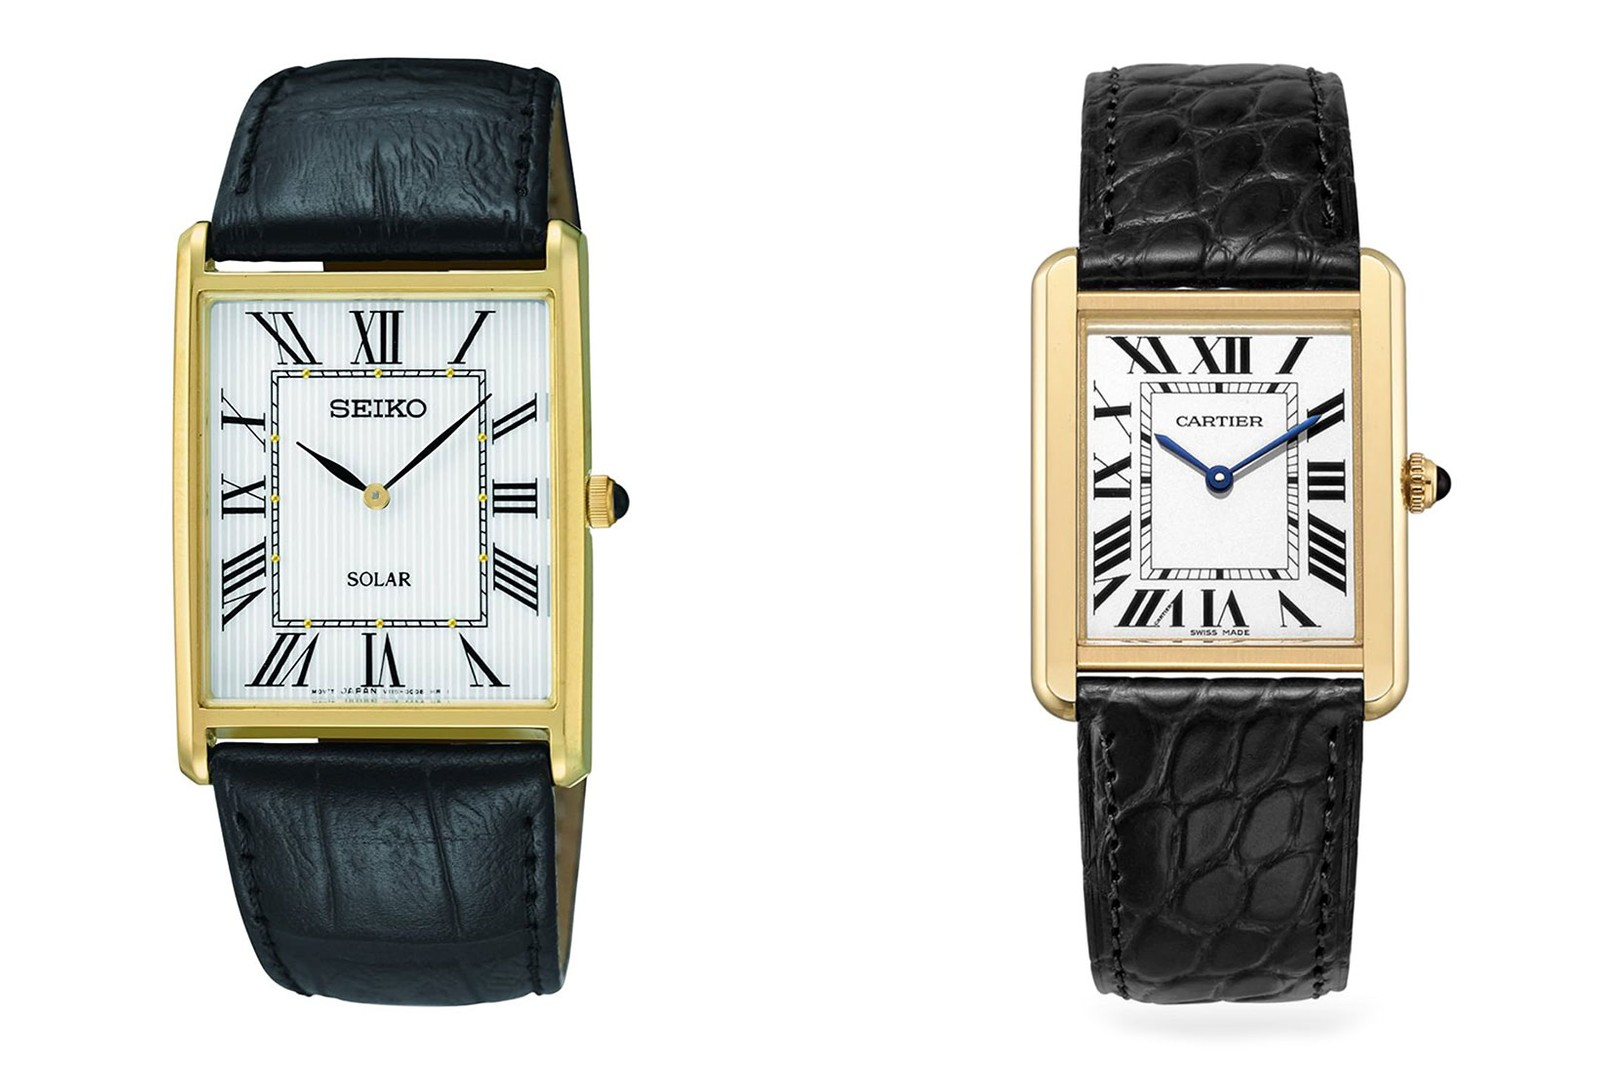 cartier tank louis brown leather strap best luxury watches affordable alternatives budget-friendly cheap